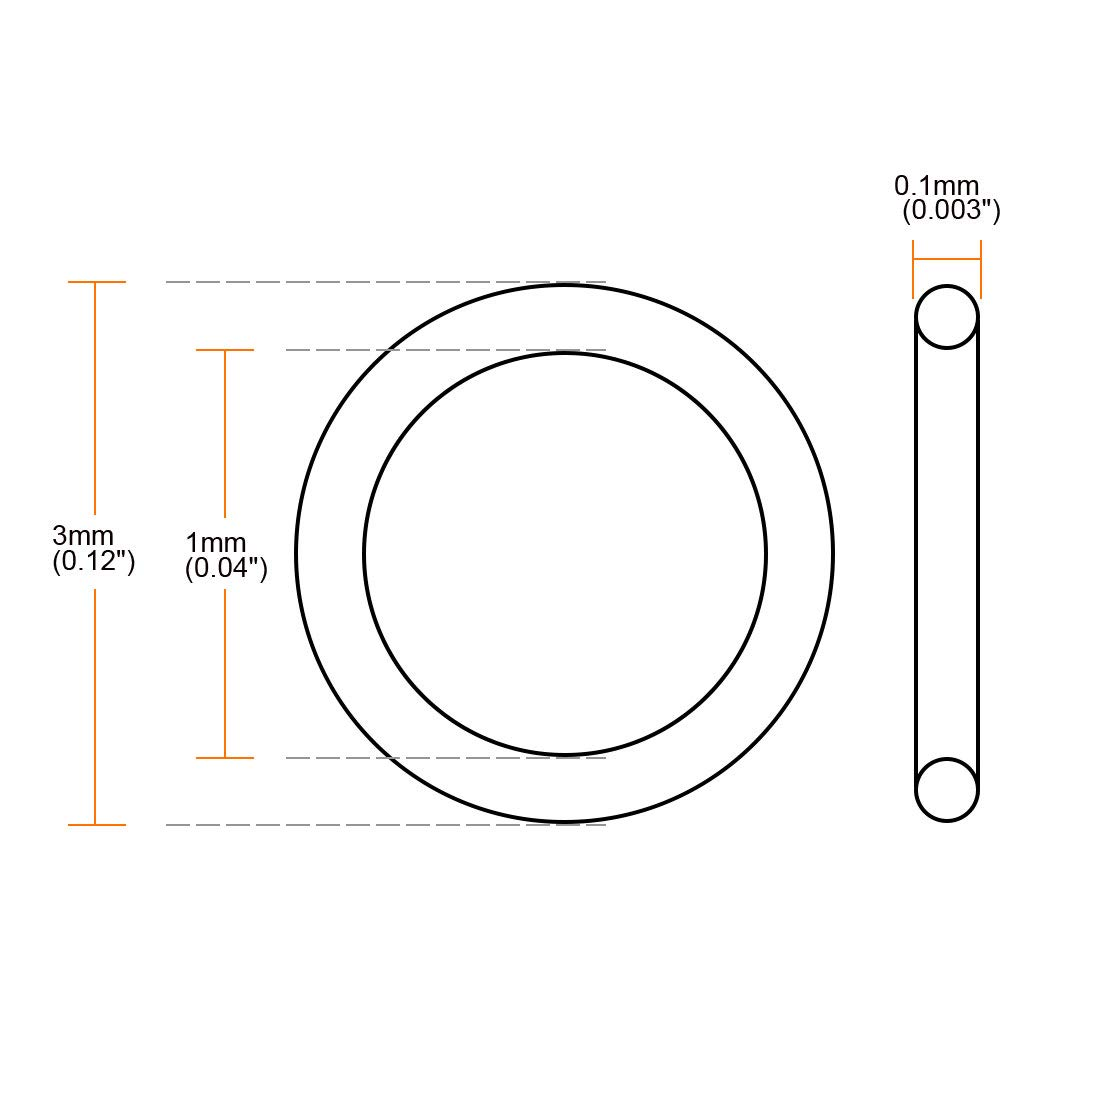 uxcell Silicone O-Rings Pack of 10 3mm OD 0.1mm ID 1mm Width VMQ Seal Gasket for Compressor Valves Pipe Repair White